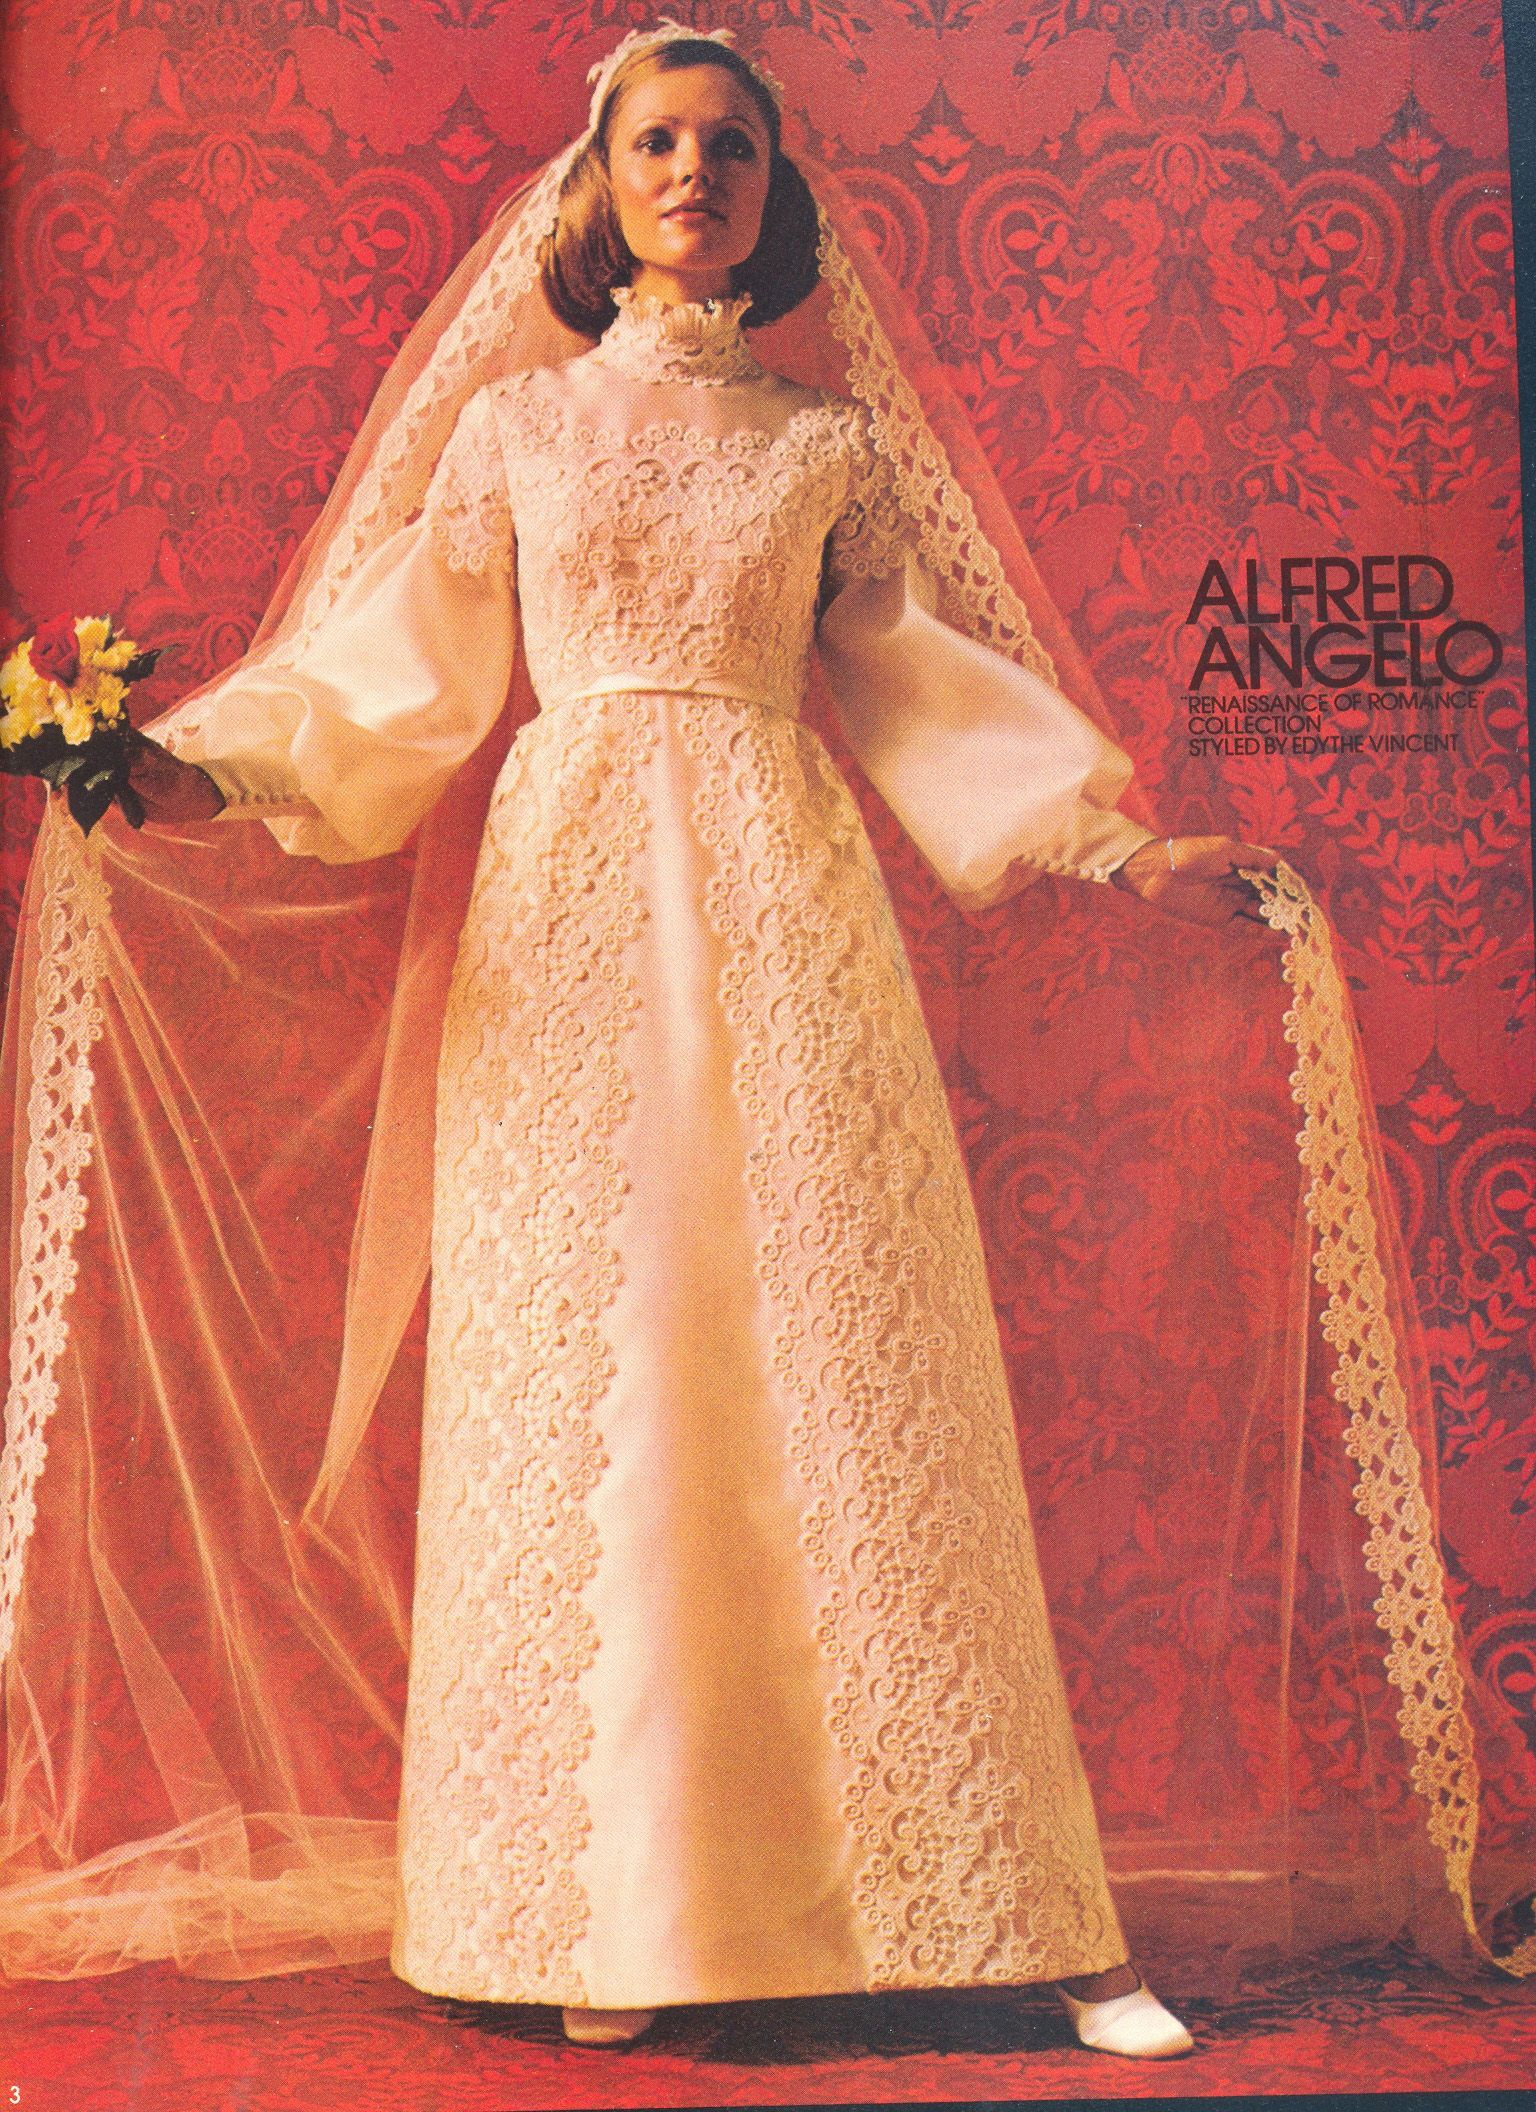 Alfred Angelo Renaissance of Romance collection styled by Edythe Vincent, August 1973, vintage designer fashion bride ad